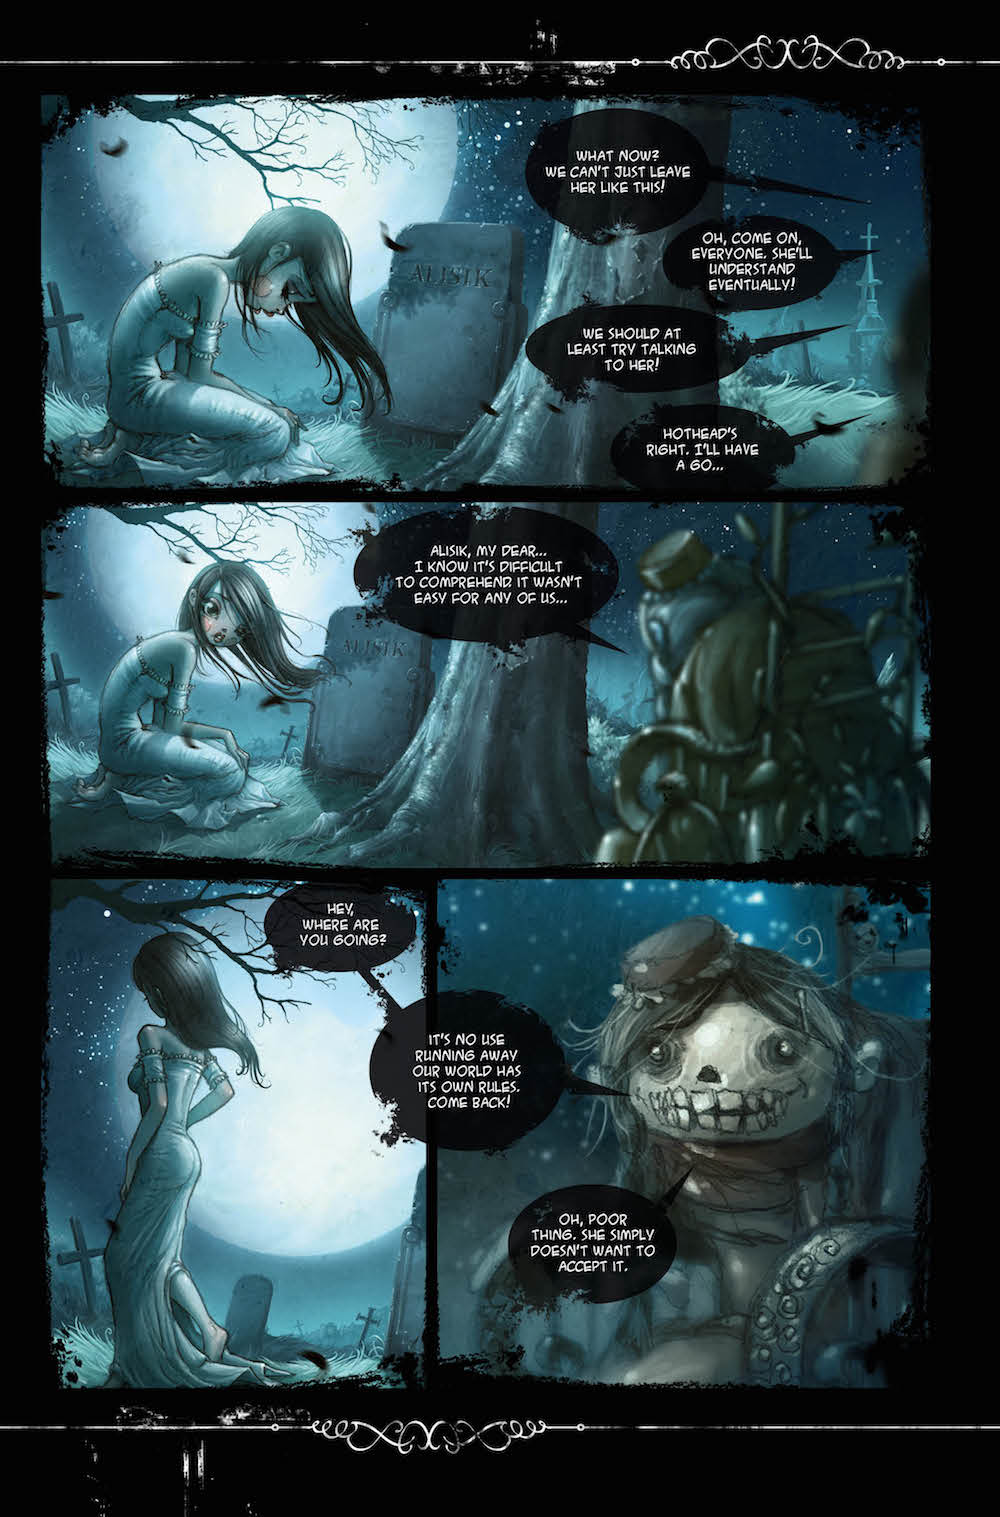 alisiki1preview 1 - Alisik Issue #1 Review - A Charmingly Beautiful Foray Into the Afterlife